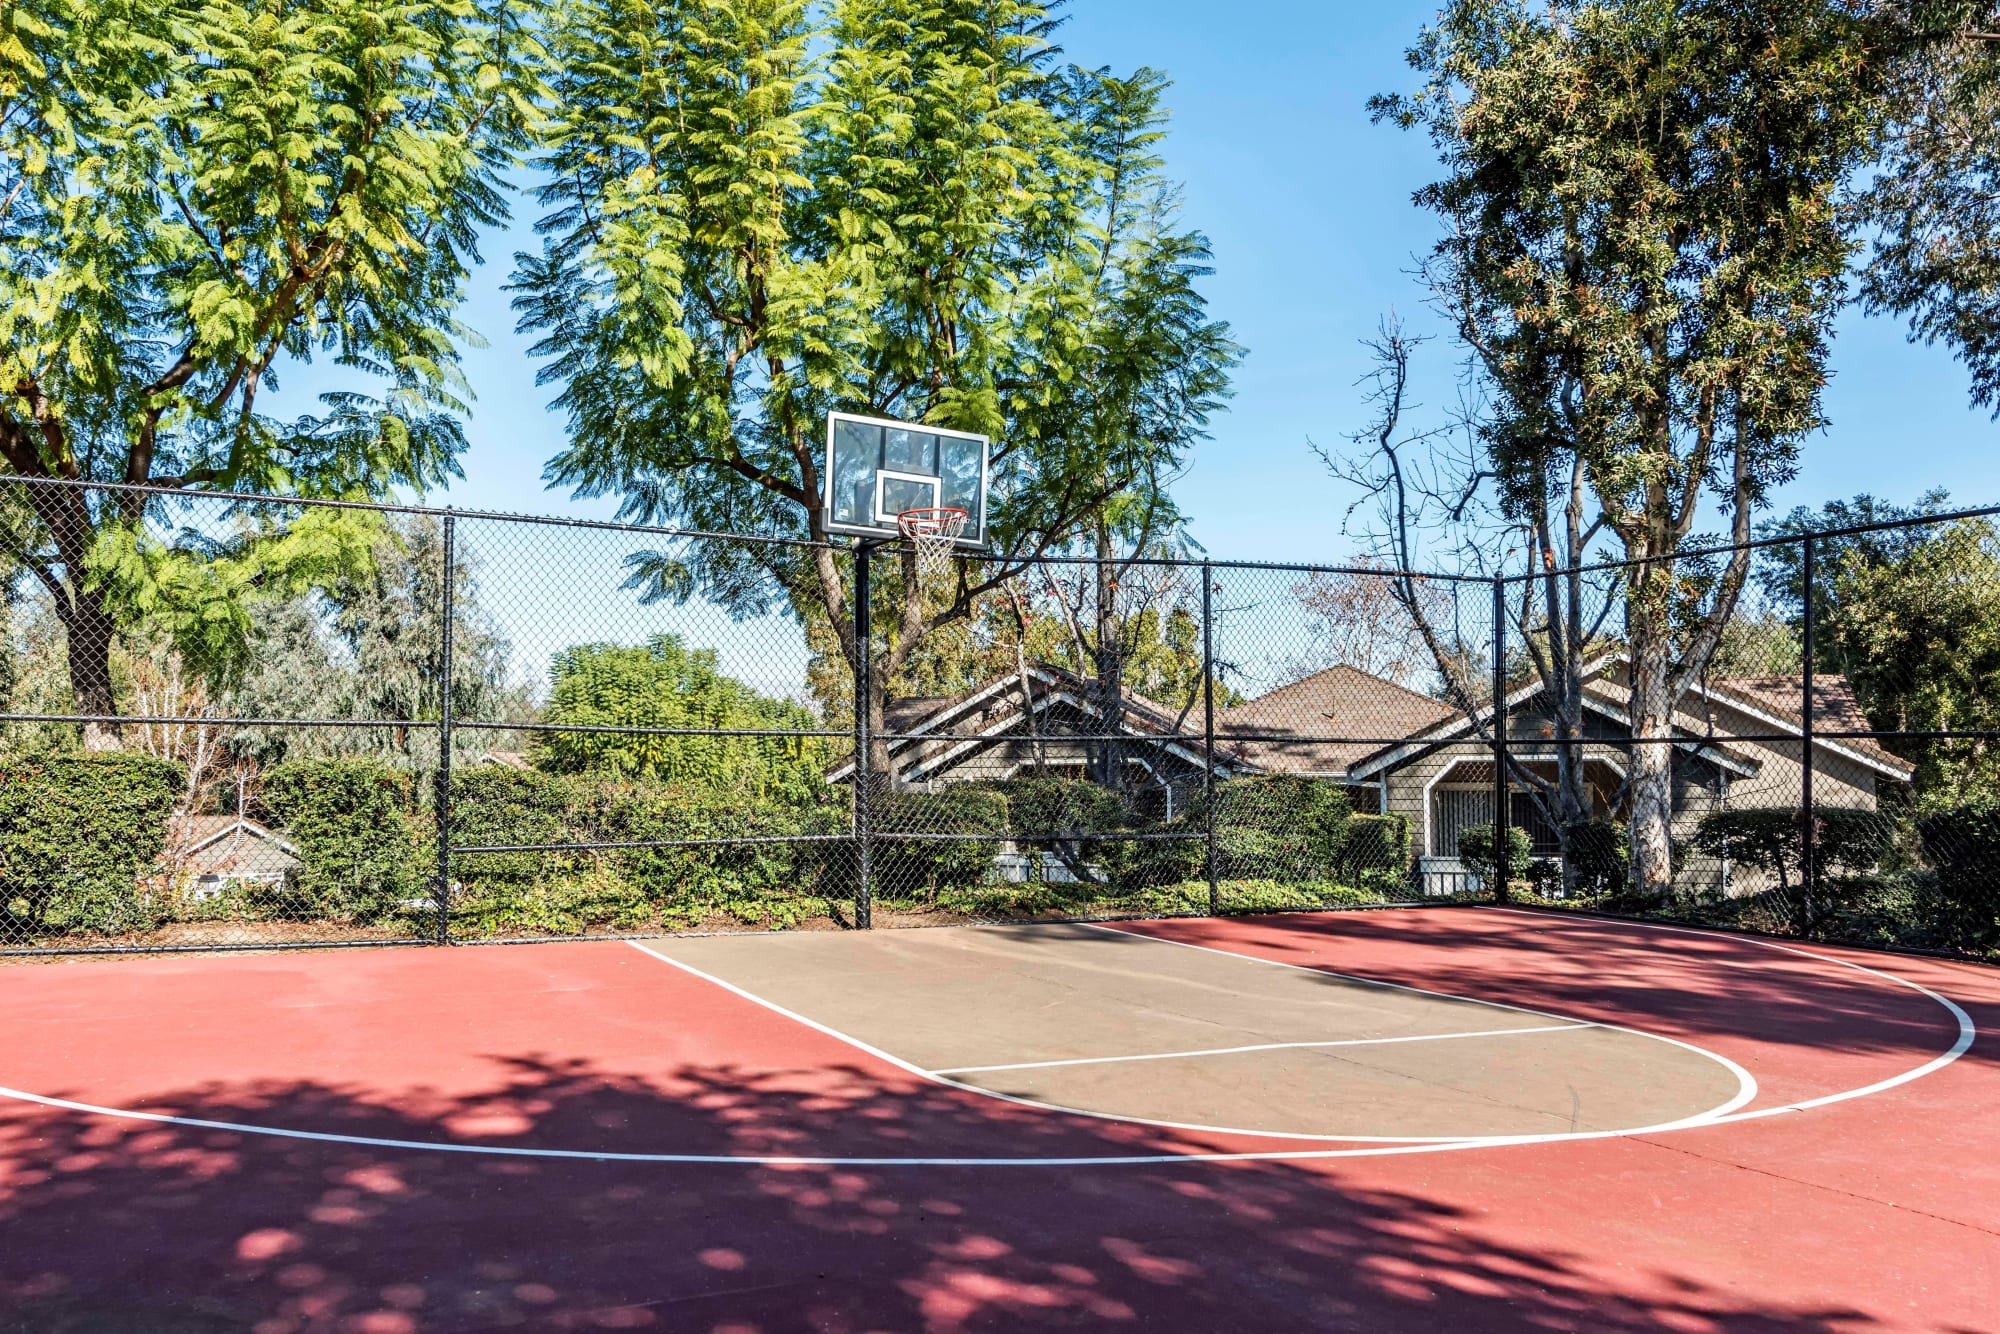 Basketball court at Village Oaks in Chino Hills, California